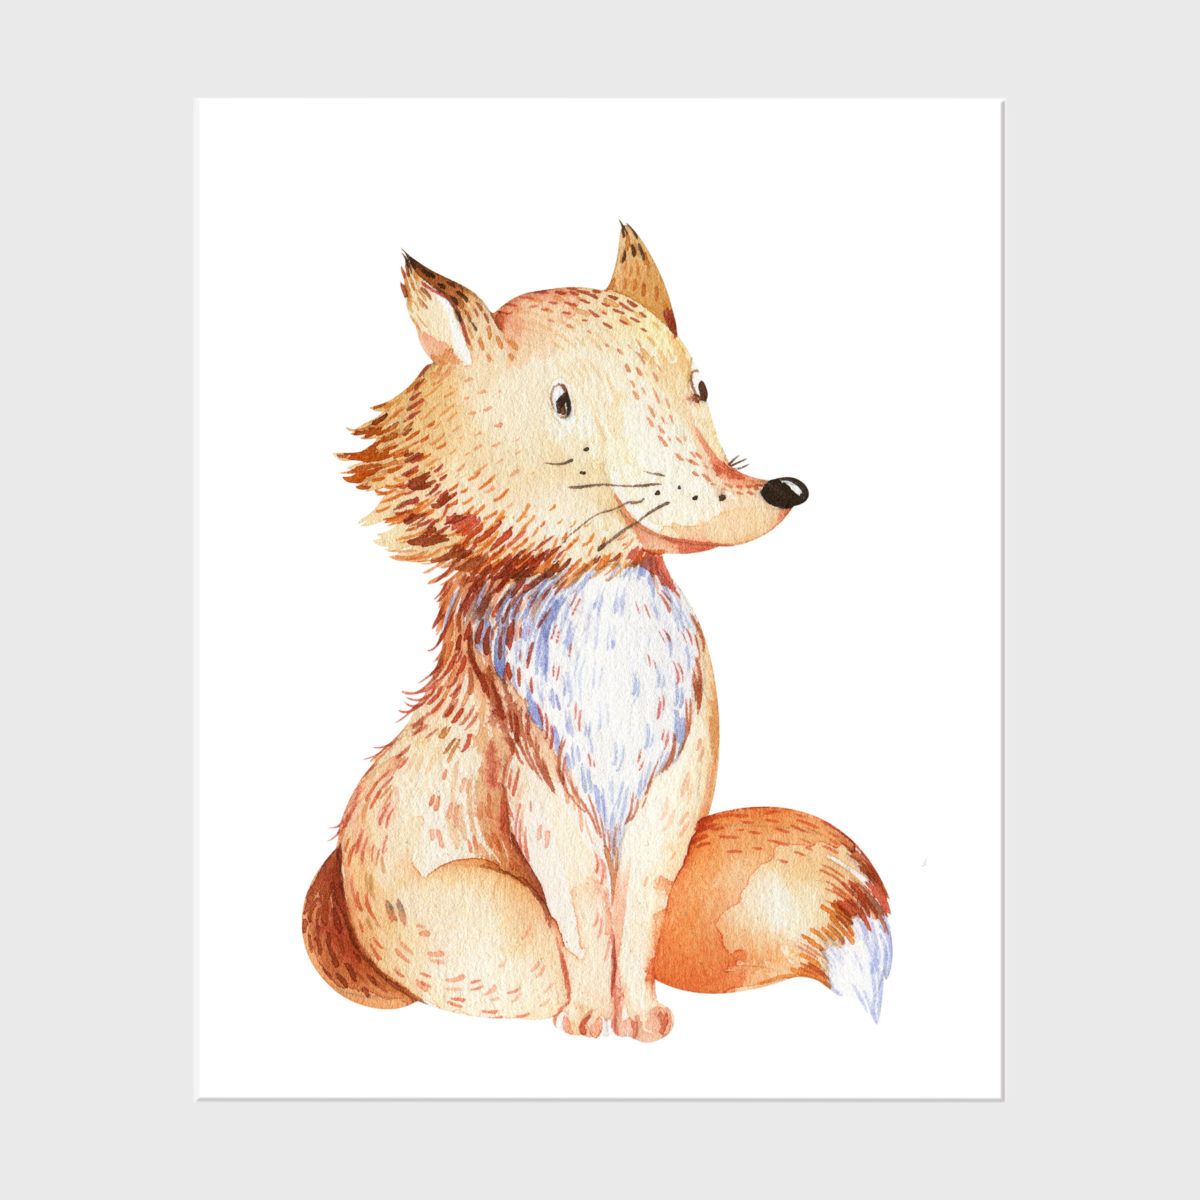 27. Fox without floral